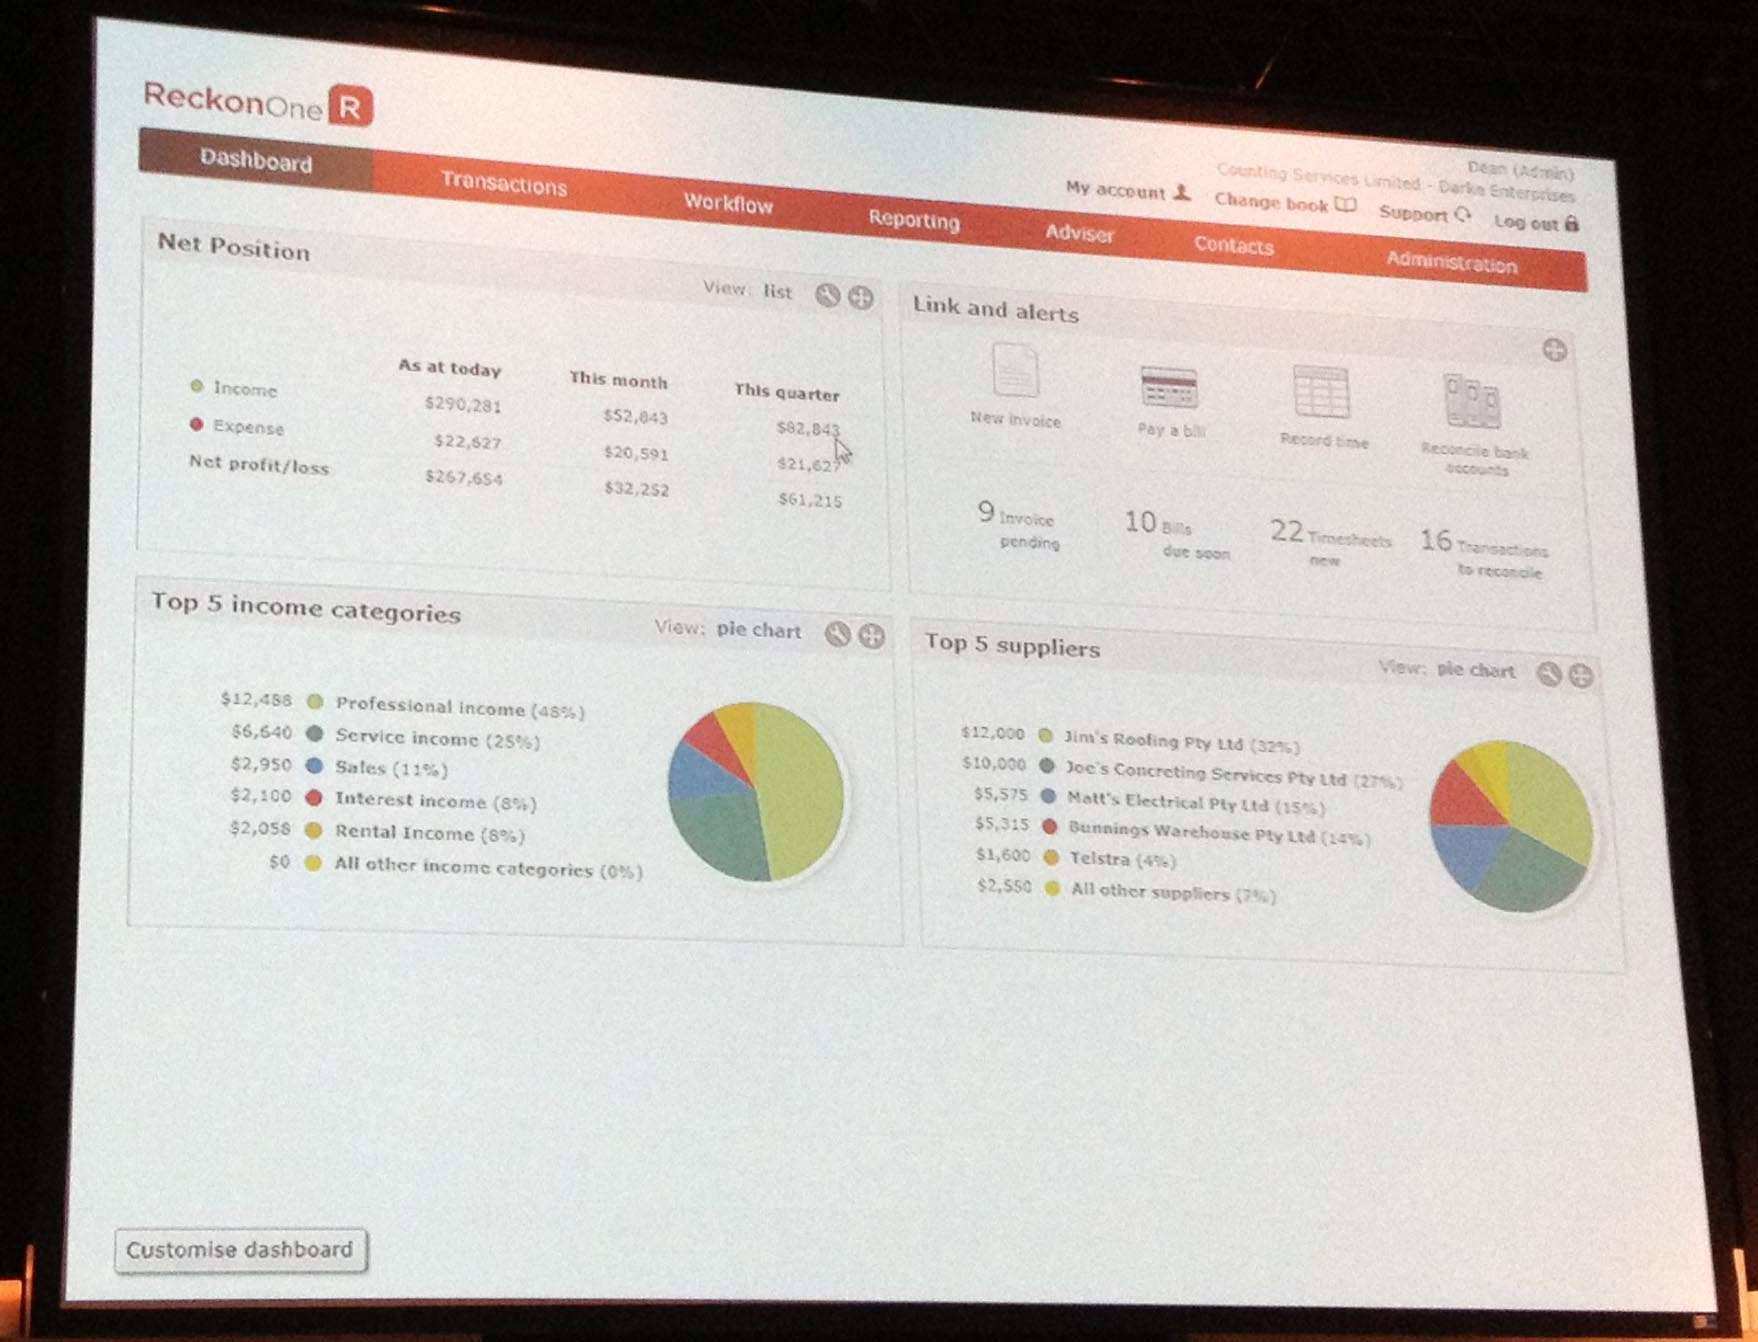 QuickBooks to this: Here's what the new Reckon One accounting